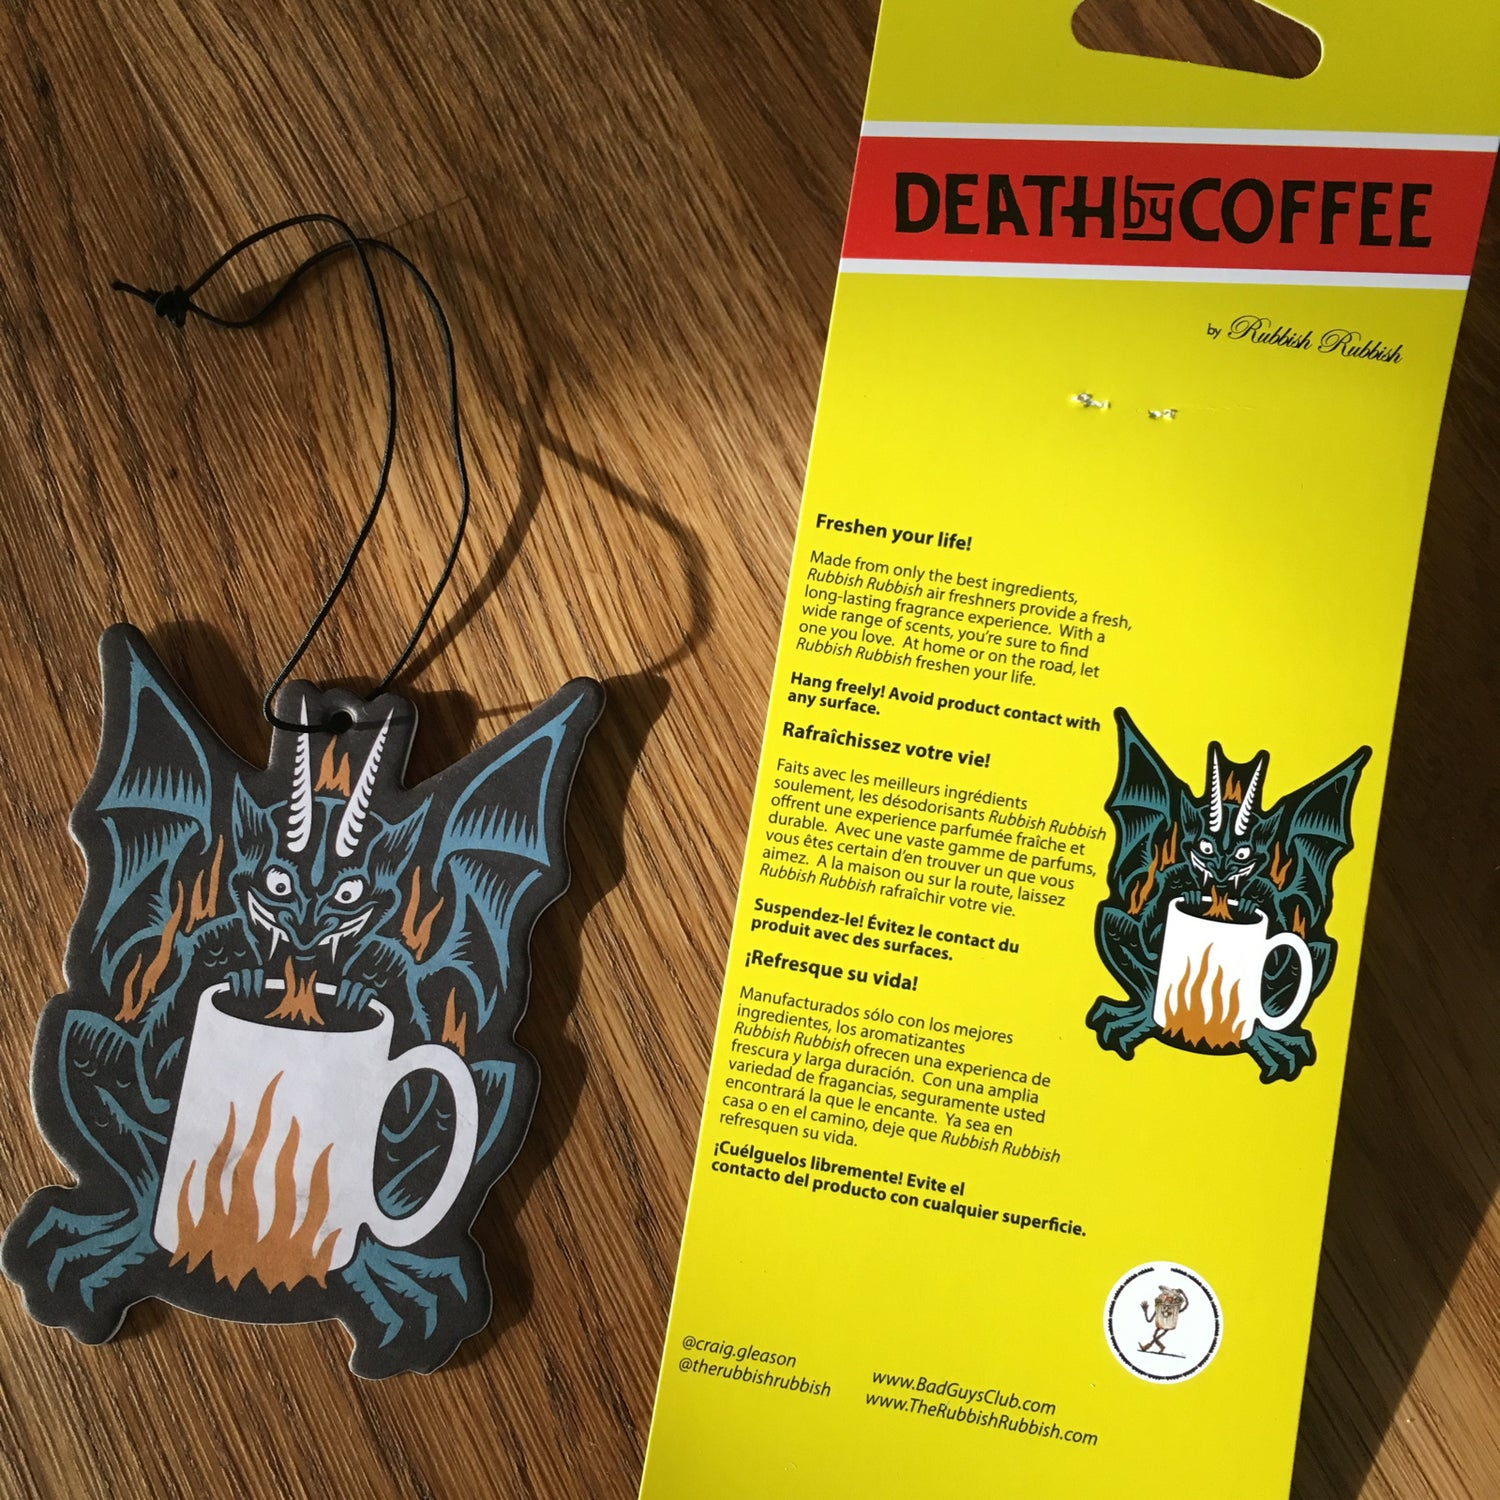 Image of Rubbish Rubbish 56 Death by Coffee